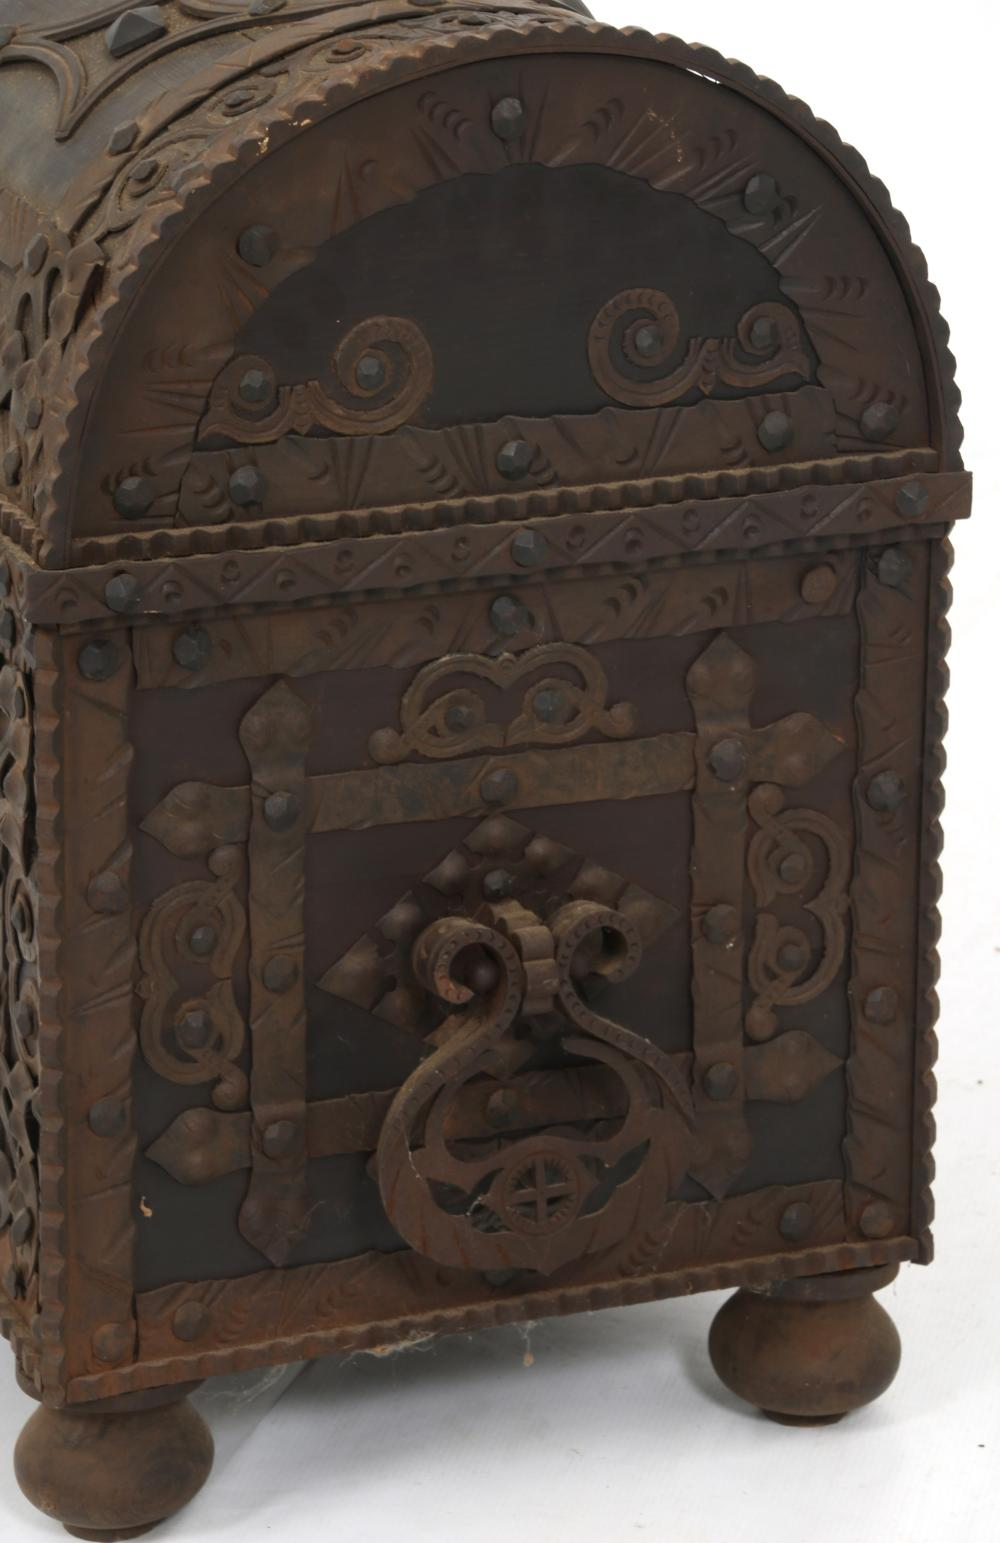 Wrought Iron & Wooden Wedding Chest